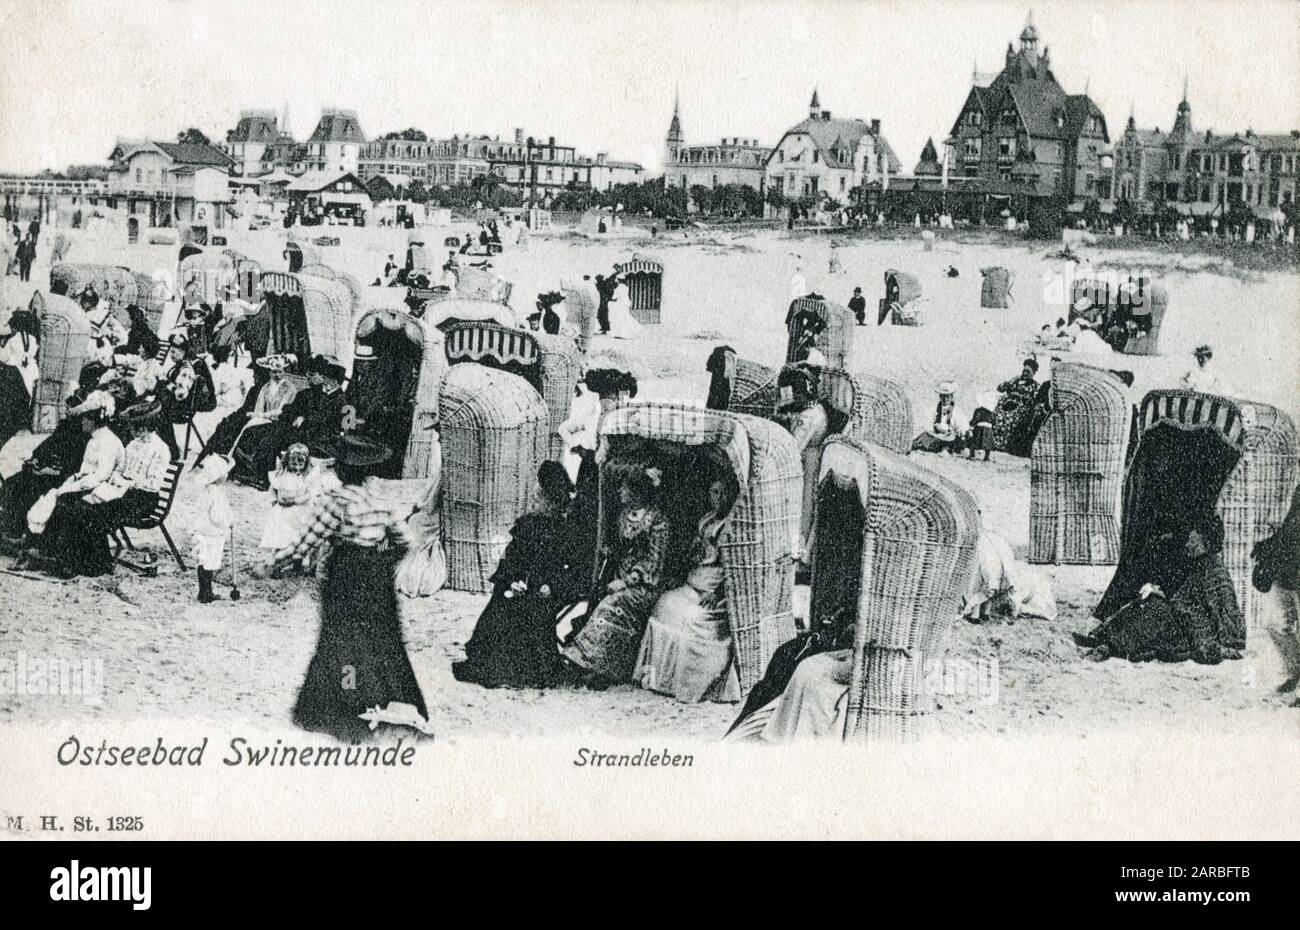 Bathers with their marvelous wickerwork seats on the beach at the Baltic Sea Coastal resort of Swinoujscie, Poland (formerly Swinemunde in German Prussia)     Date: 1905 Stock Photo